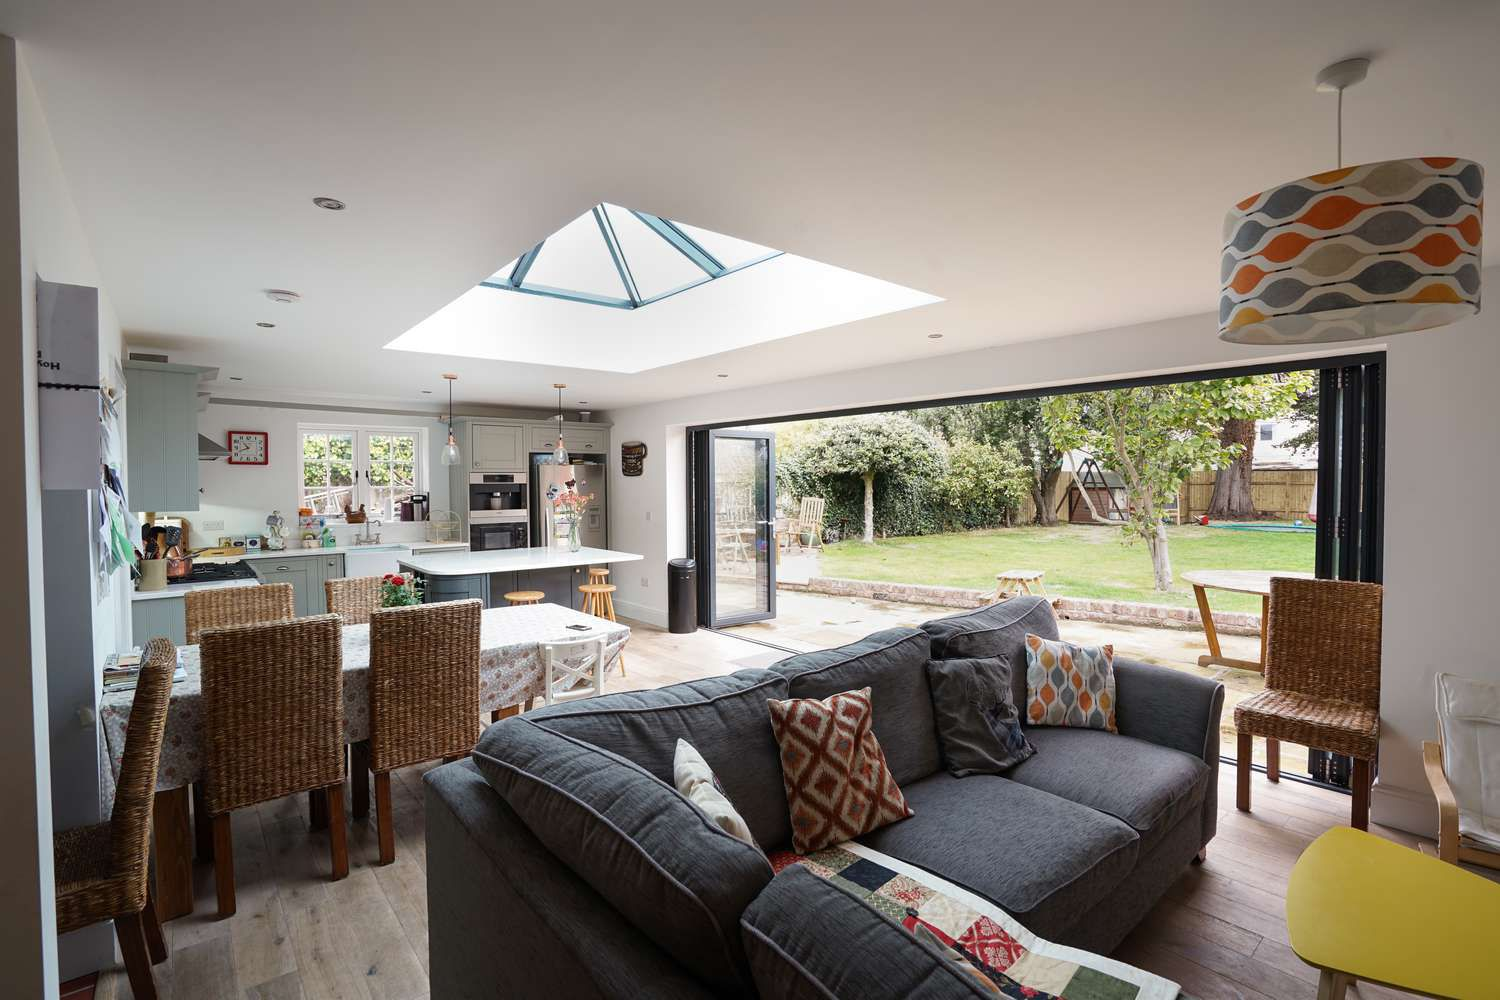 Interior shot showing the complete living area a space for cooking, dining, entertaining and living what more could you ask for this space has it all. Large bifold doors and a roof light allow for lots of natural light and easy access to outdoor entertaining.